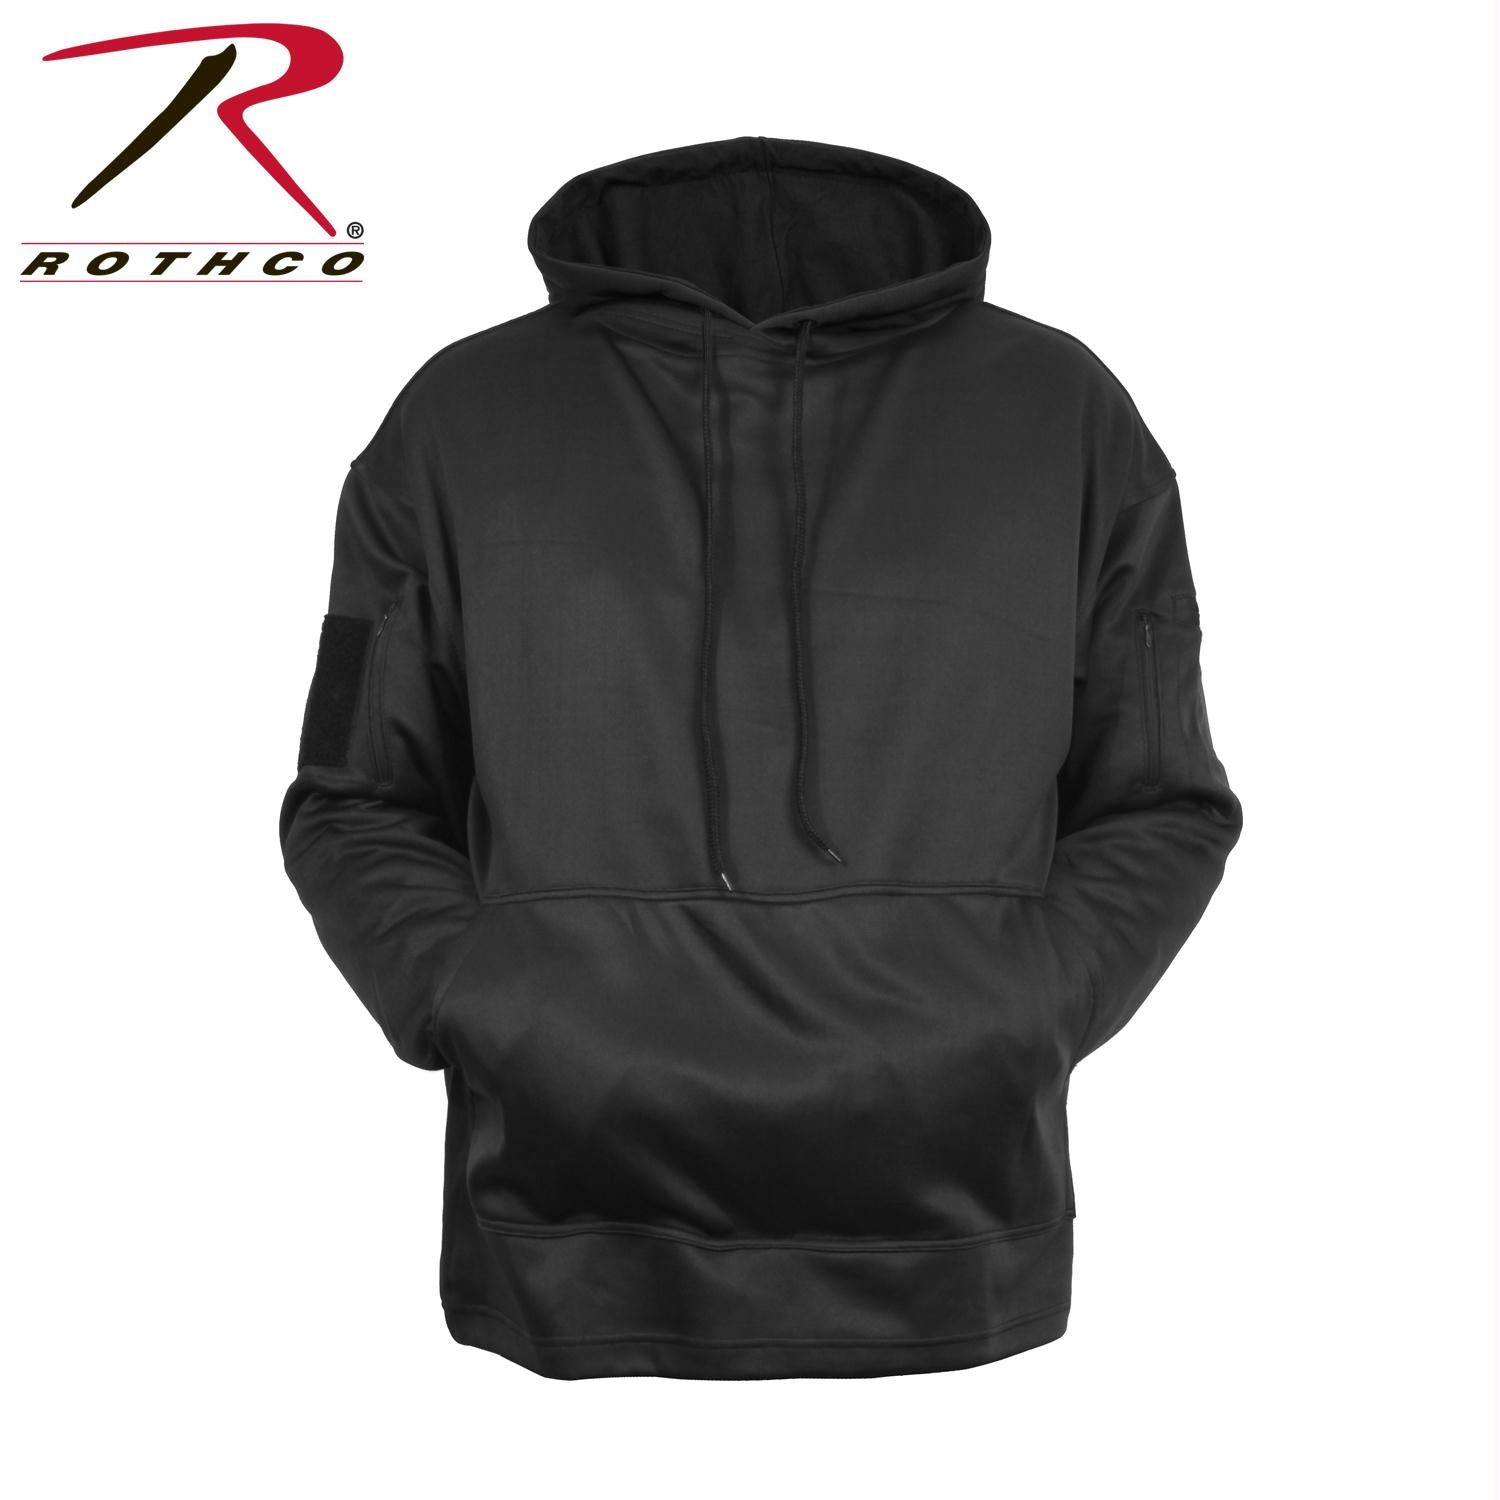 Rothco Concealed Carry Hoodie - Black / M